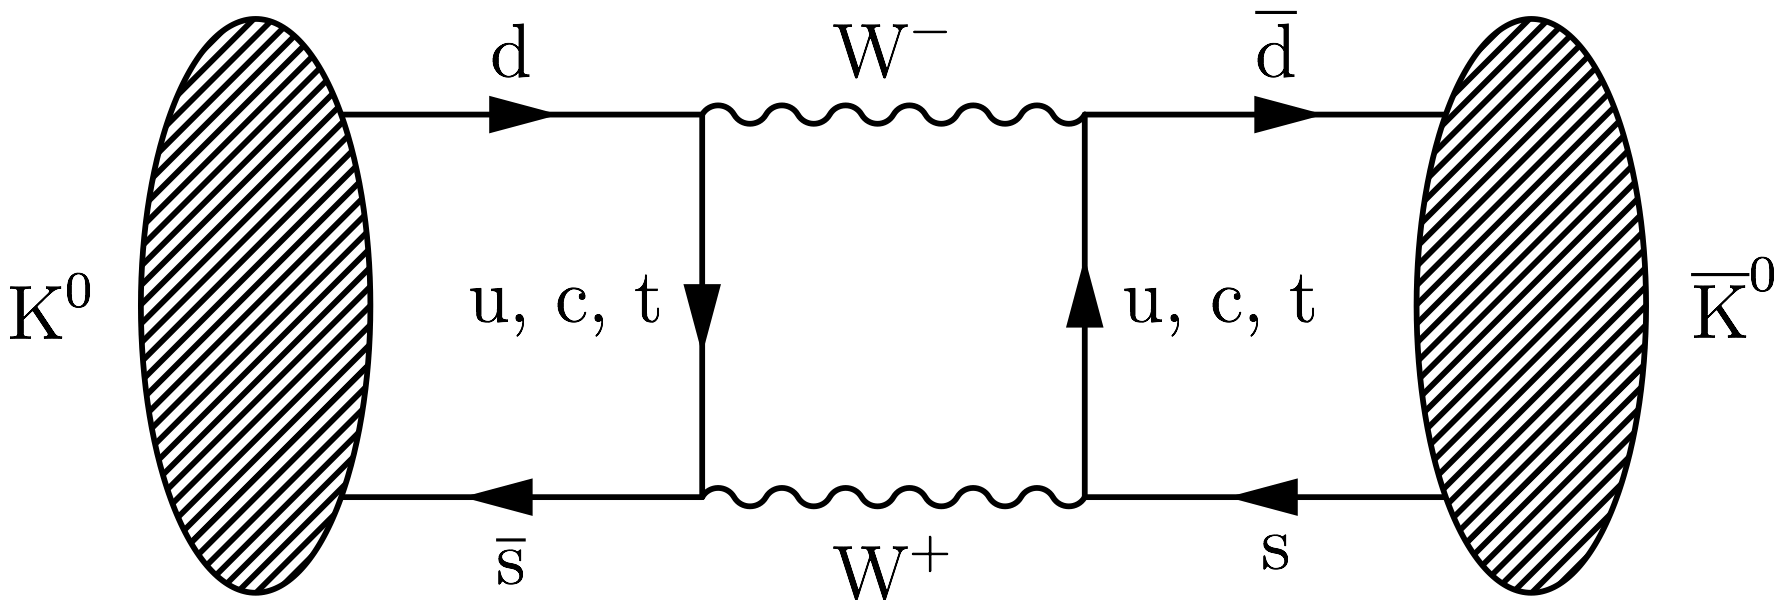 medium resolution of neutron